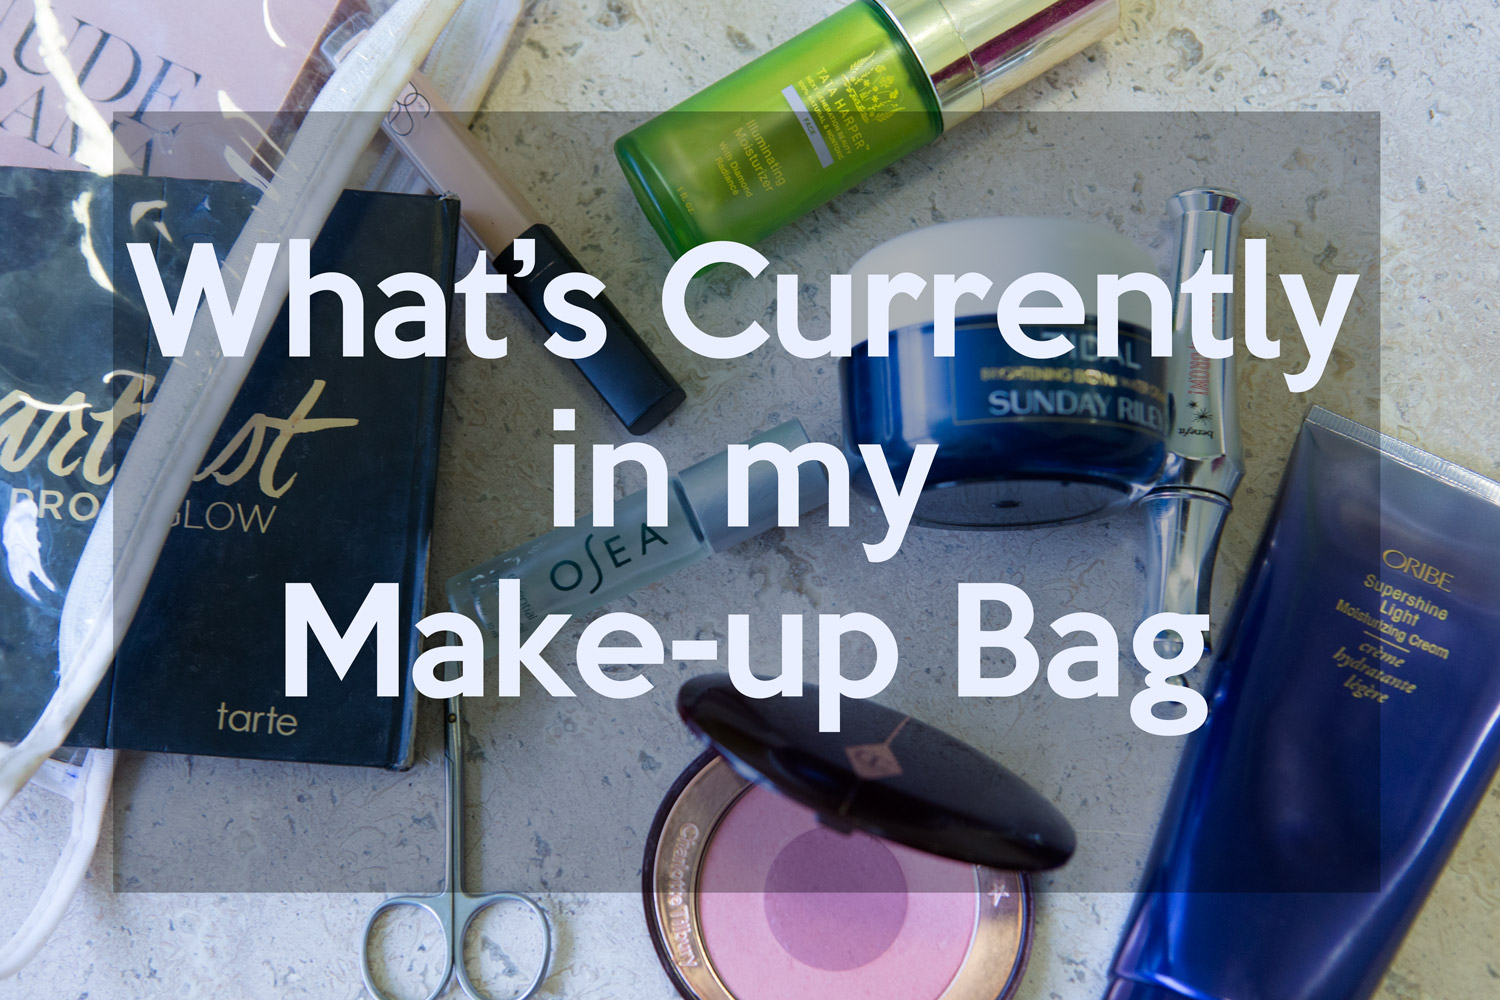 Currently in my make-up bag